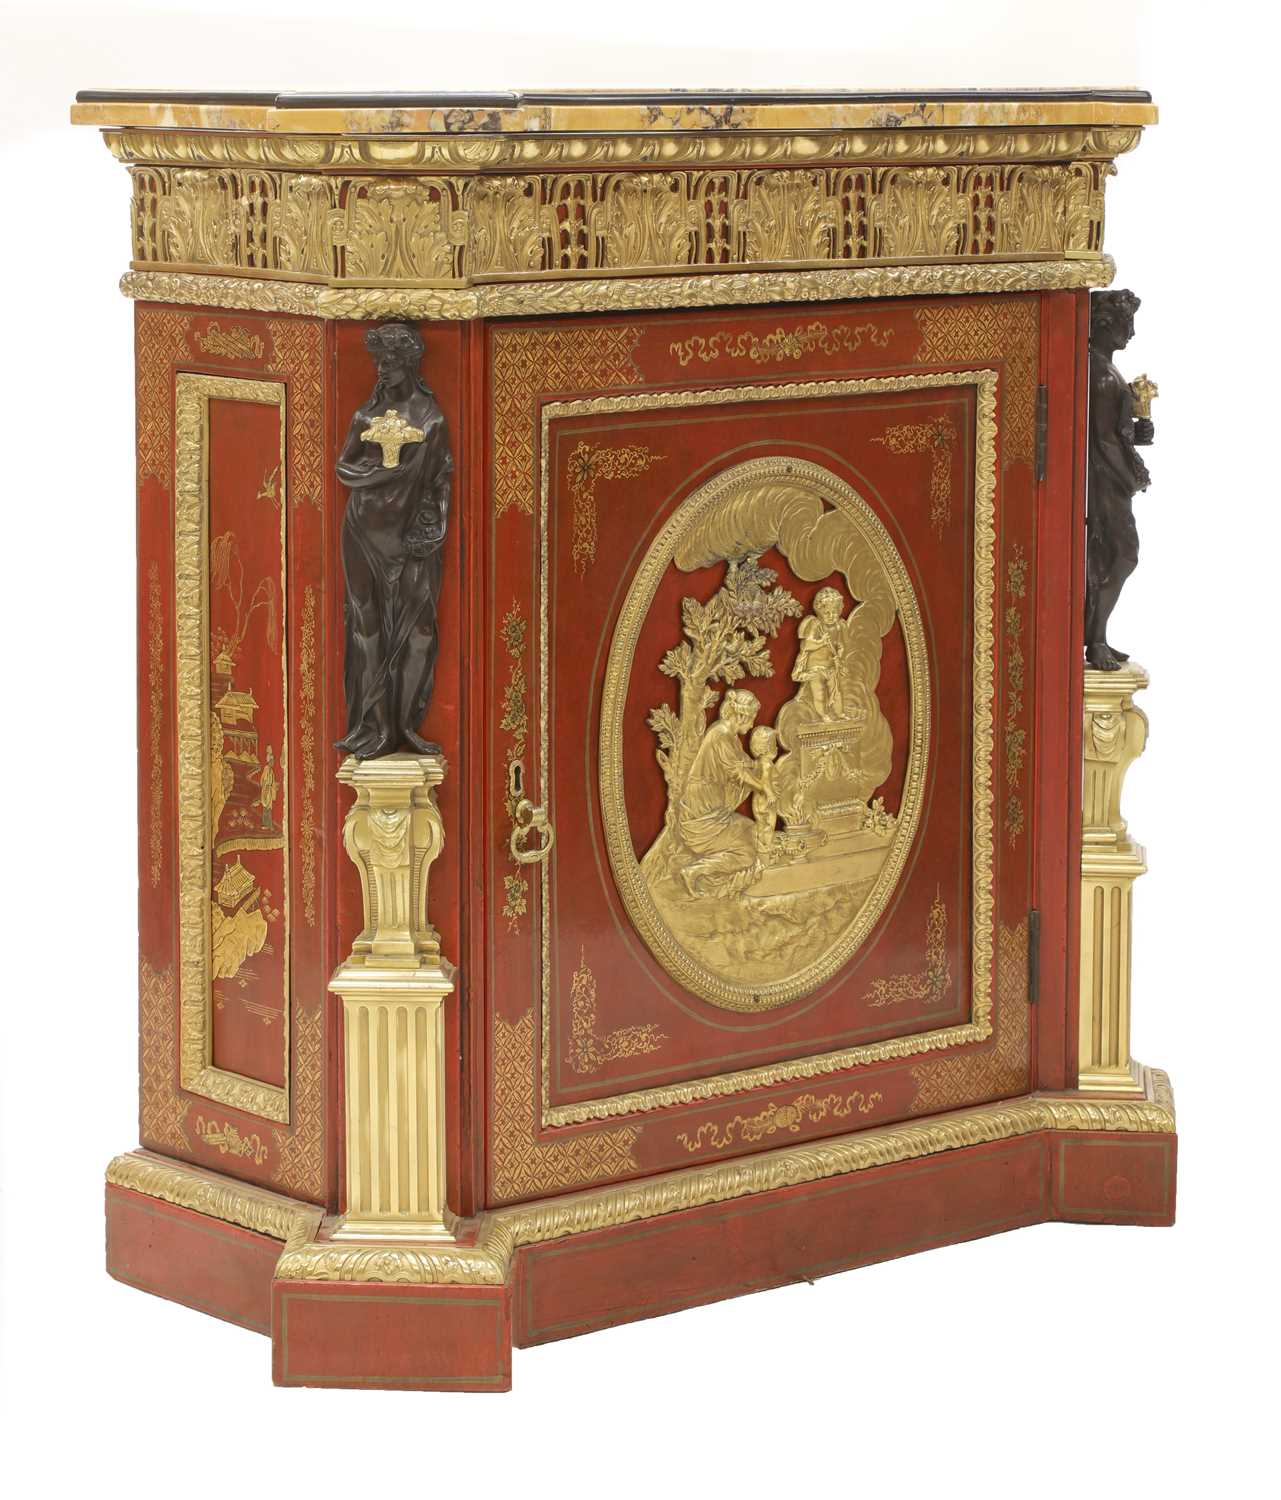 A red-lacquered and ormolu-mounted pier cabinet, - Image 2 of 16